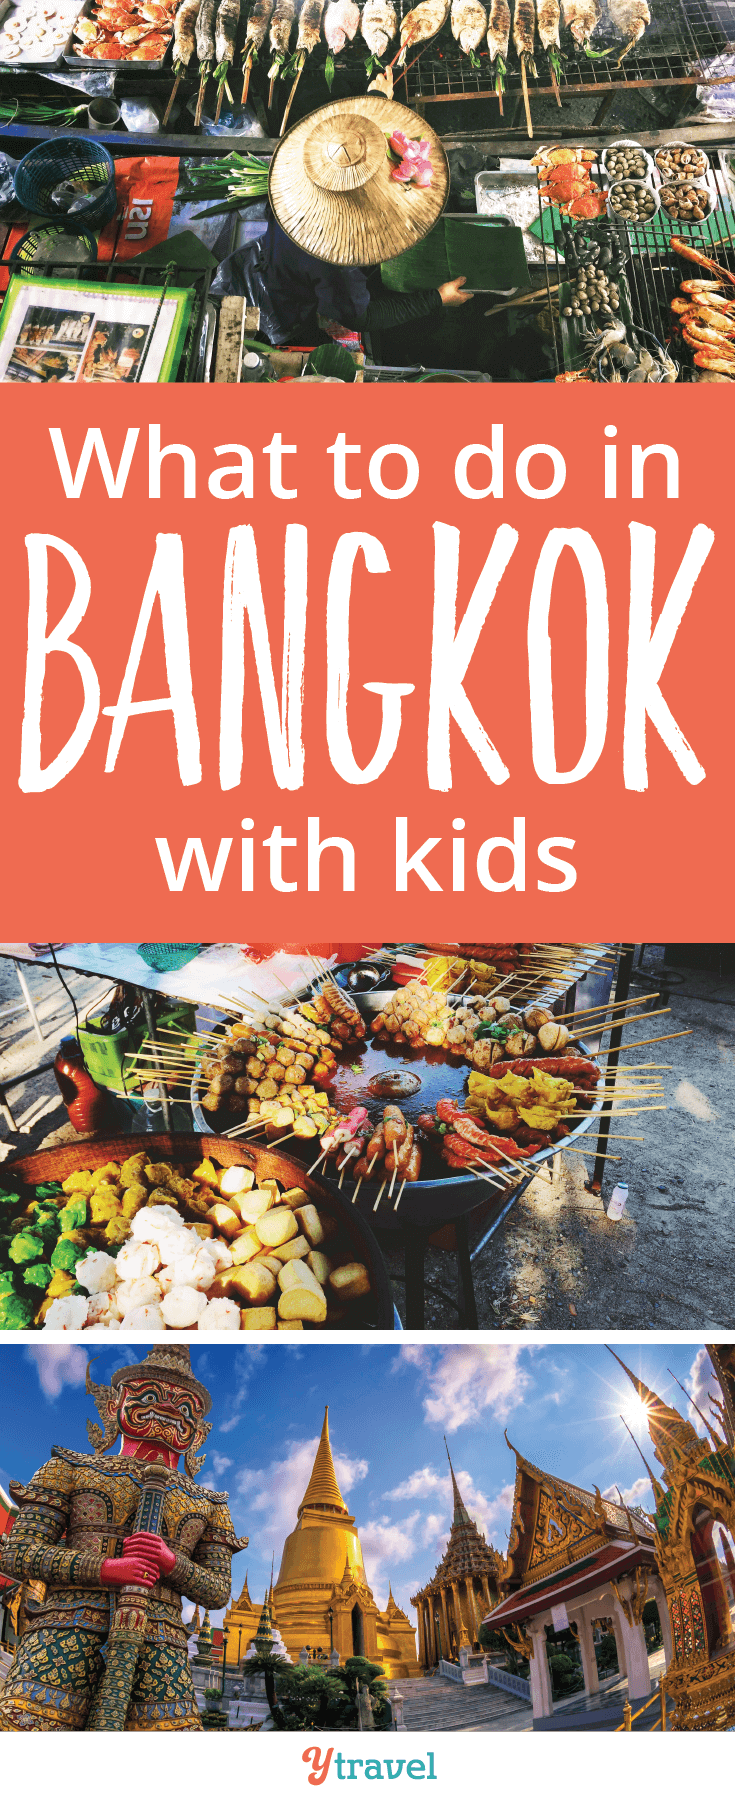 Looking to Bangkok for a family vacation? We've got you covered for what to do in Bangkok with kids!